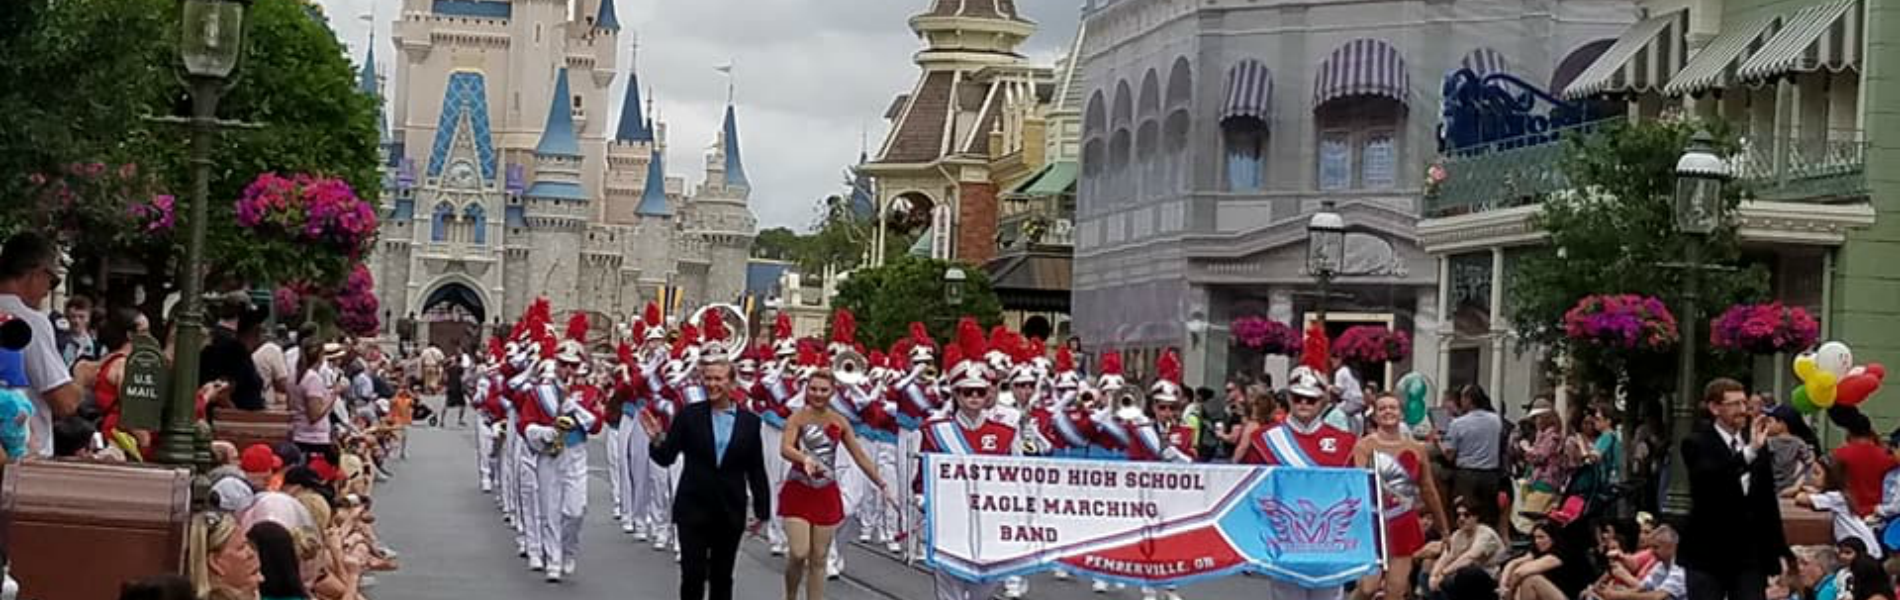 Marching band performs in Magic Kingdom's Festival of Fantasy parade at Disney in Orlando